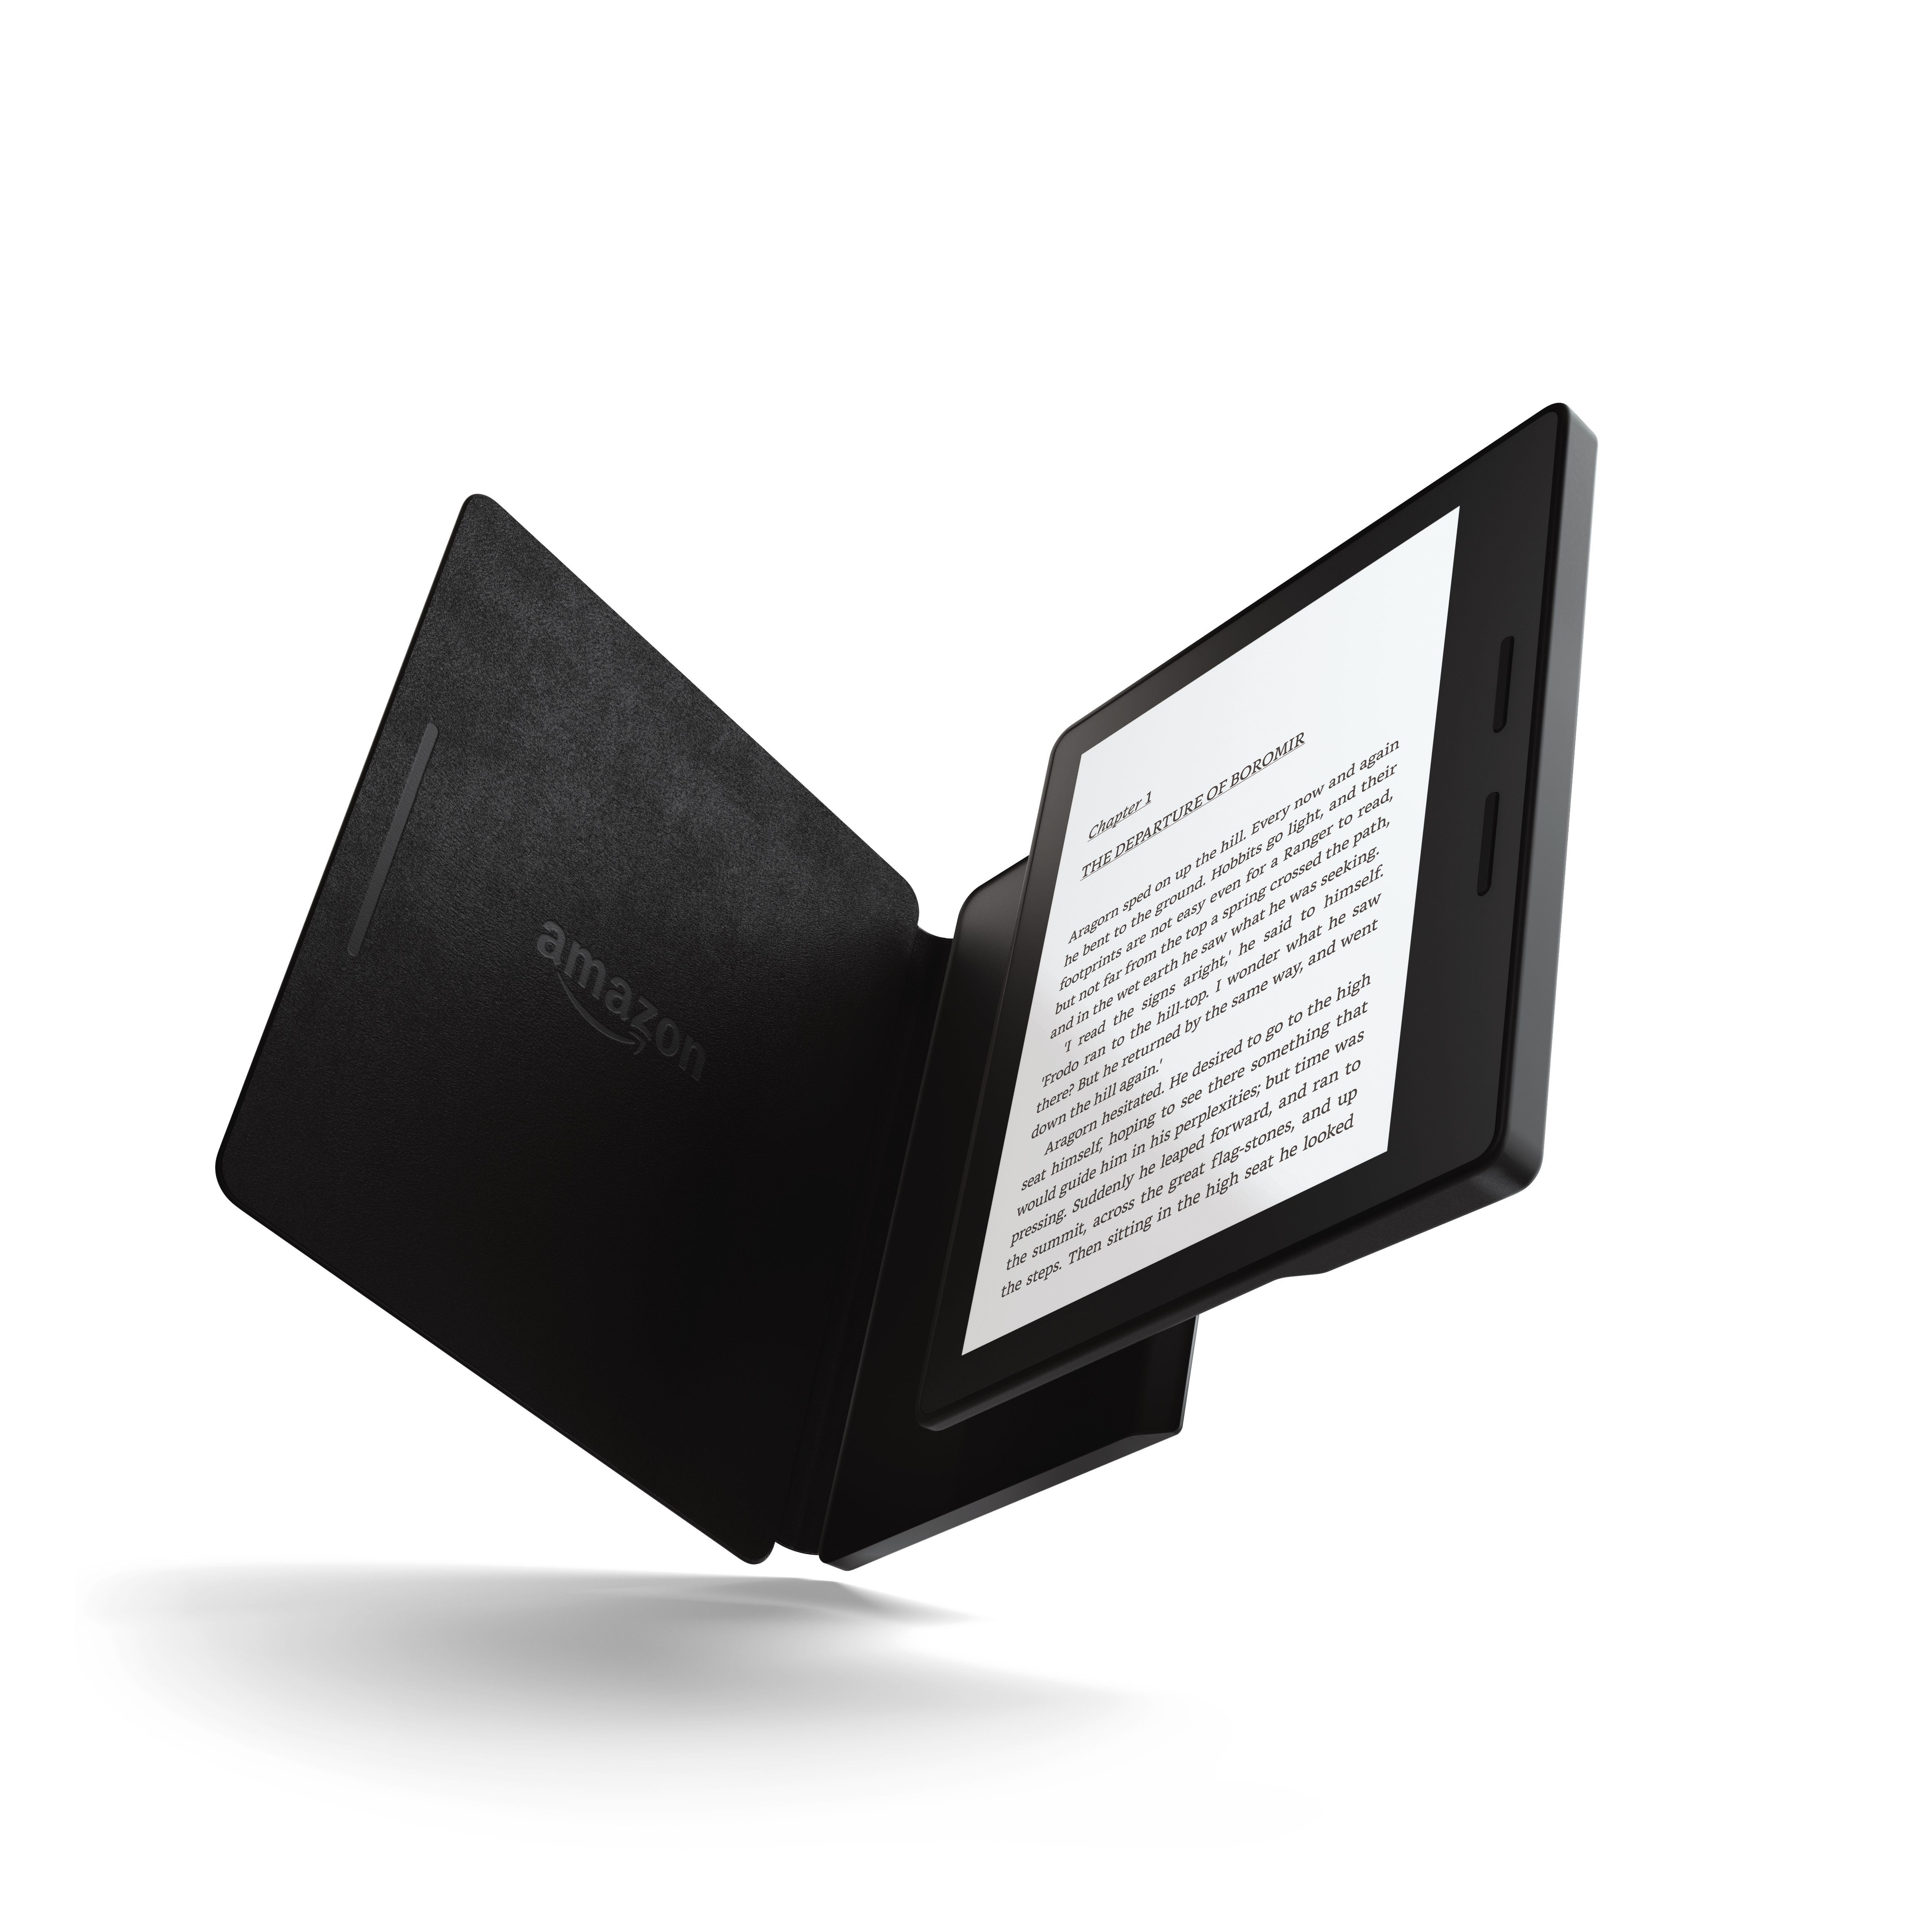 The new Kindle Oasis from Amazon